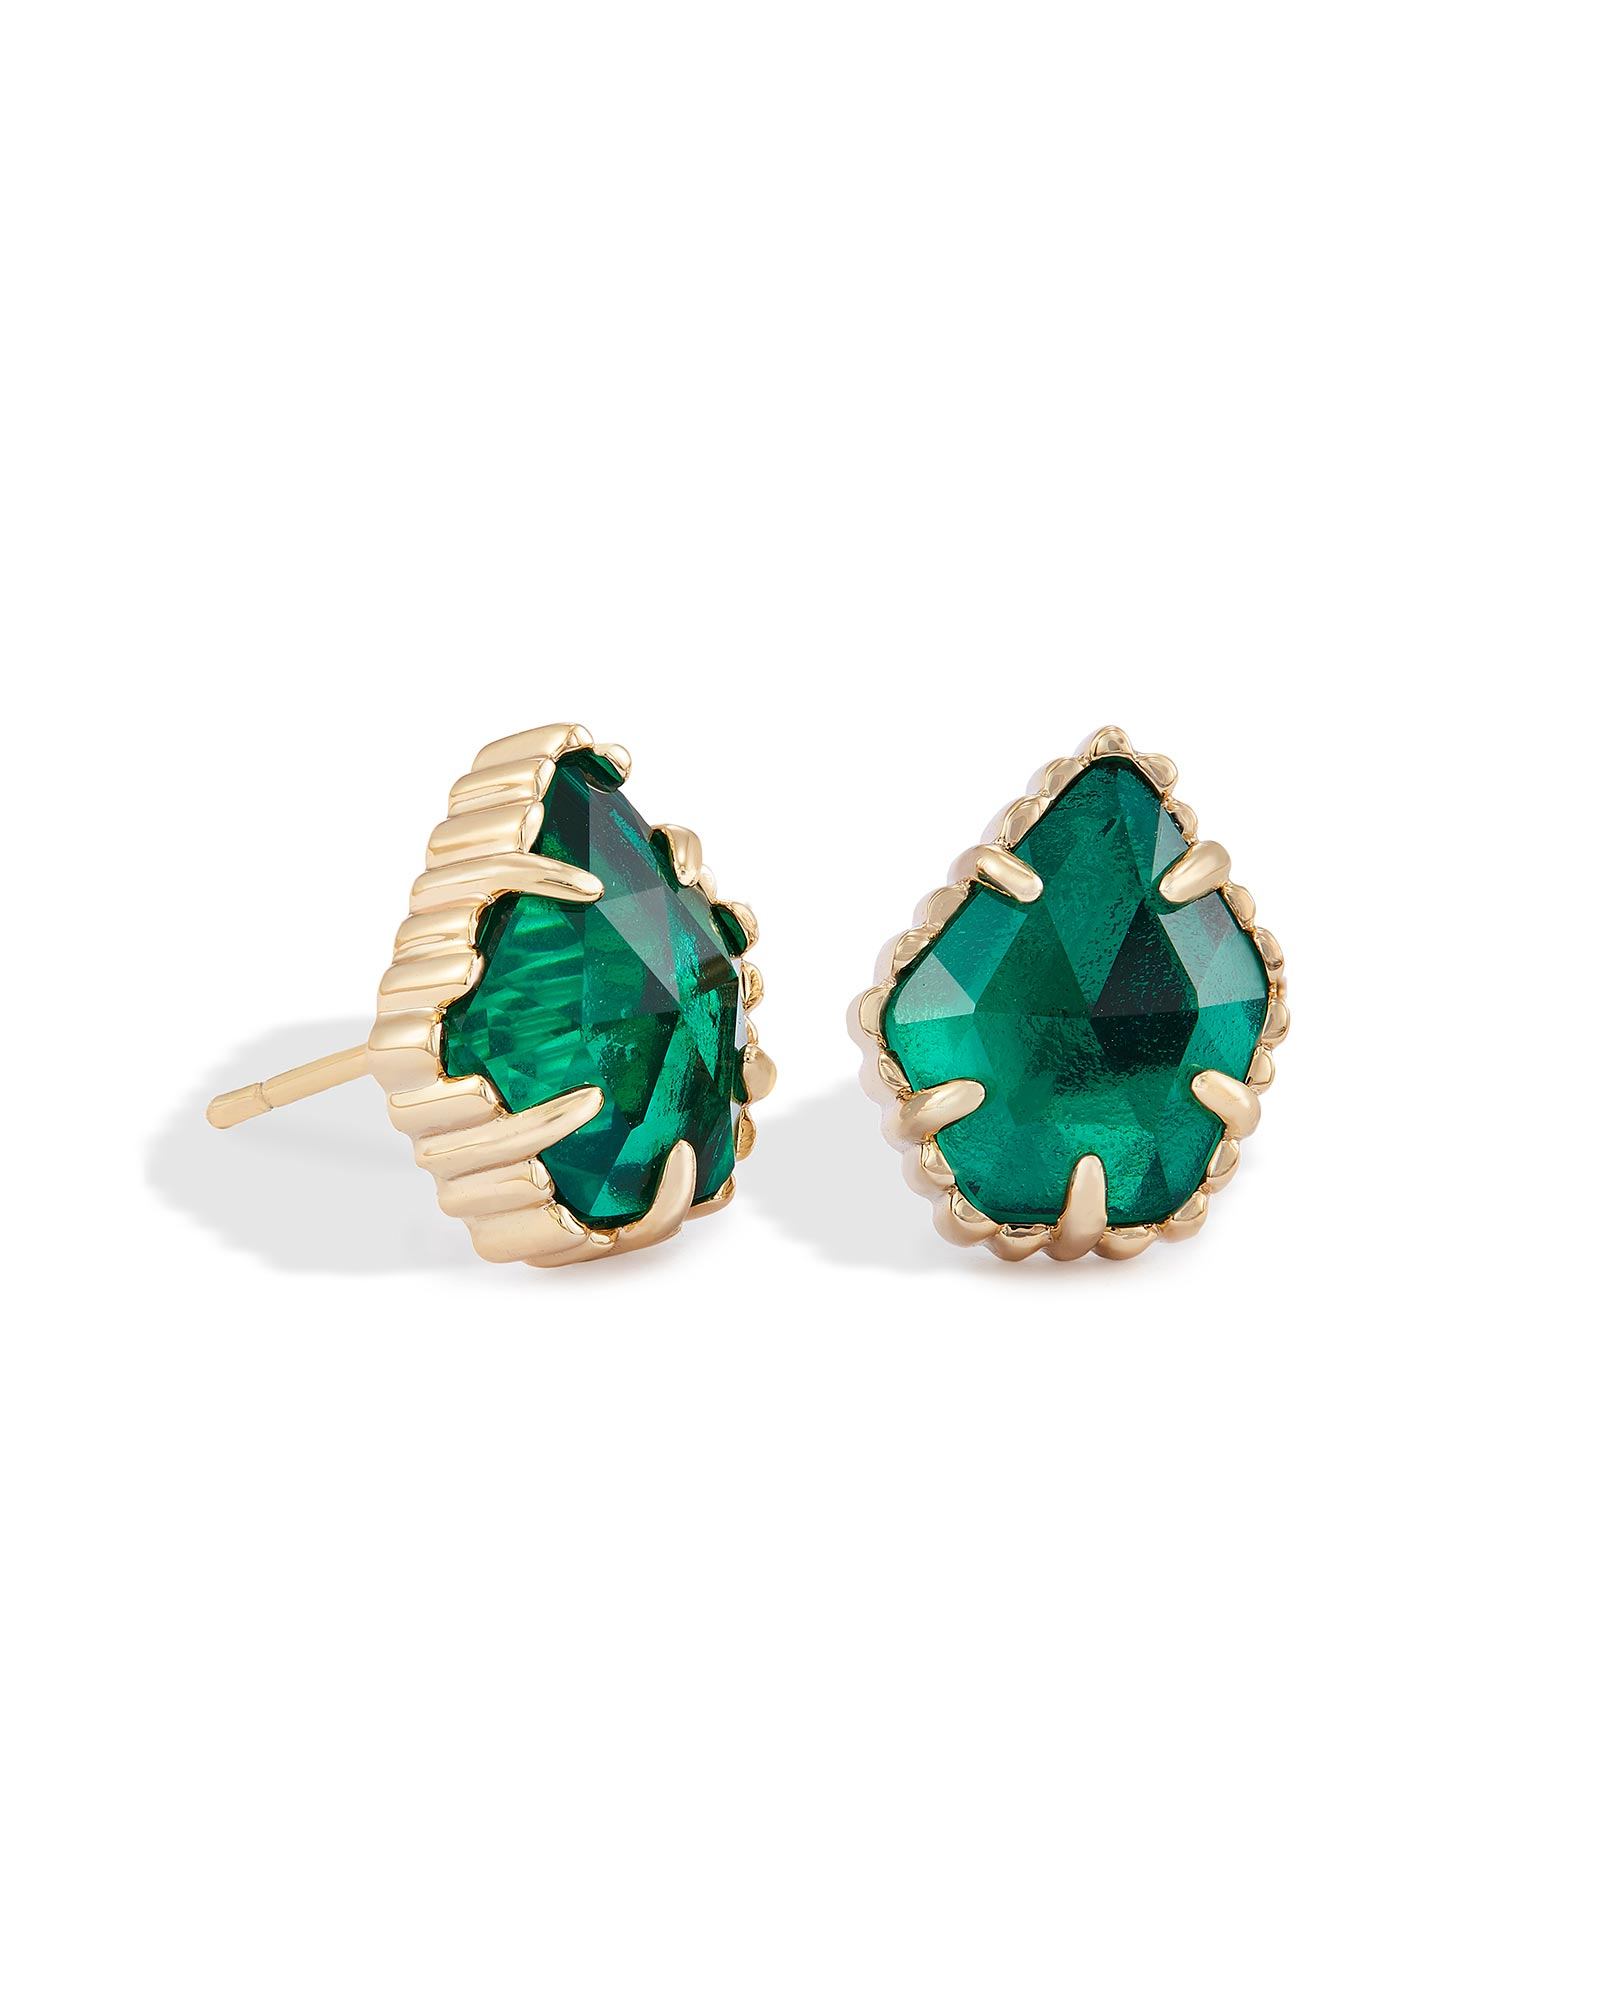 earrings in princess mm green lab created stud yellow gold x emerald cut